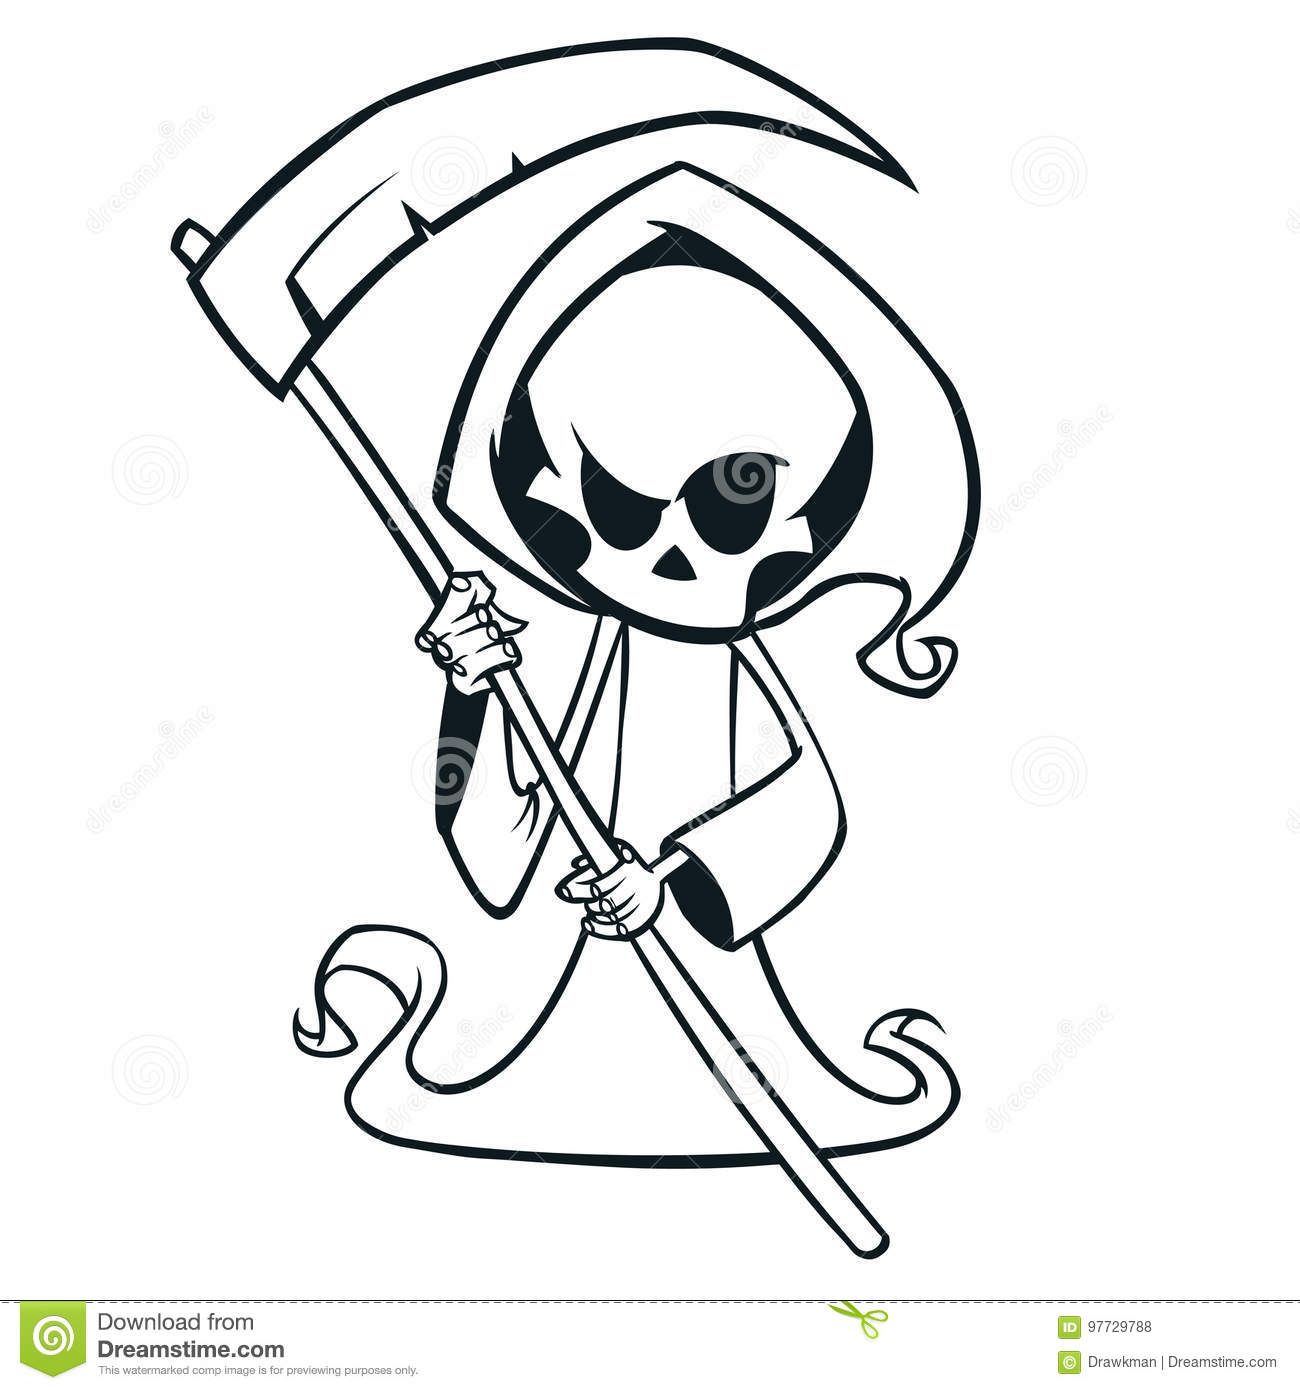 Cute cartoon grim reaper with scythe isolated on white. Cute Halloween skeleton death character outlines